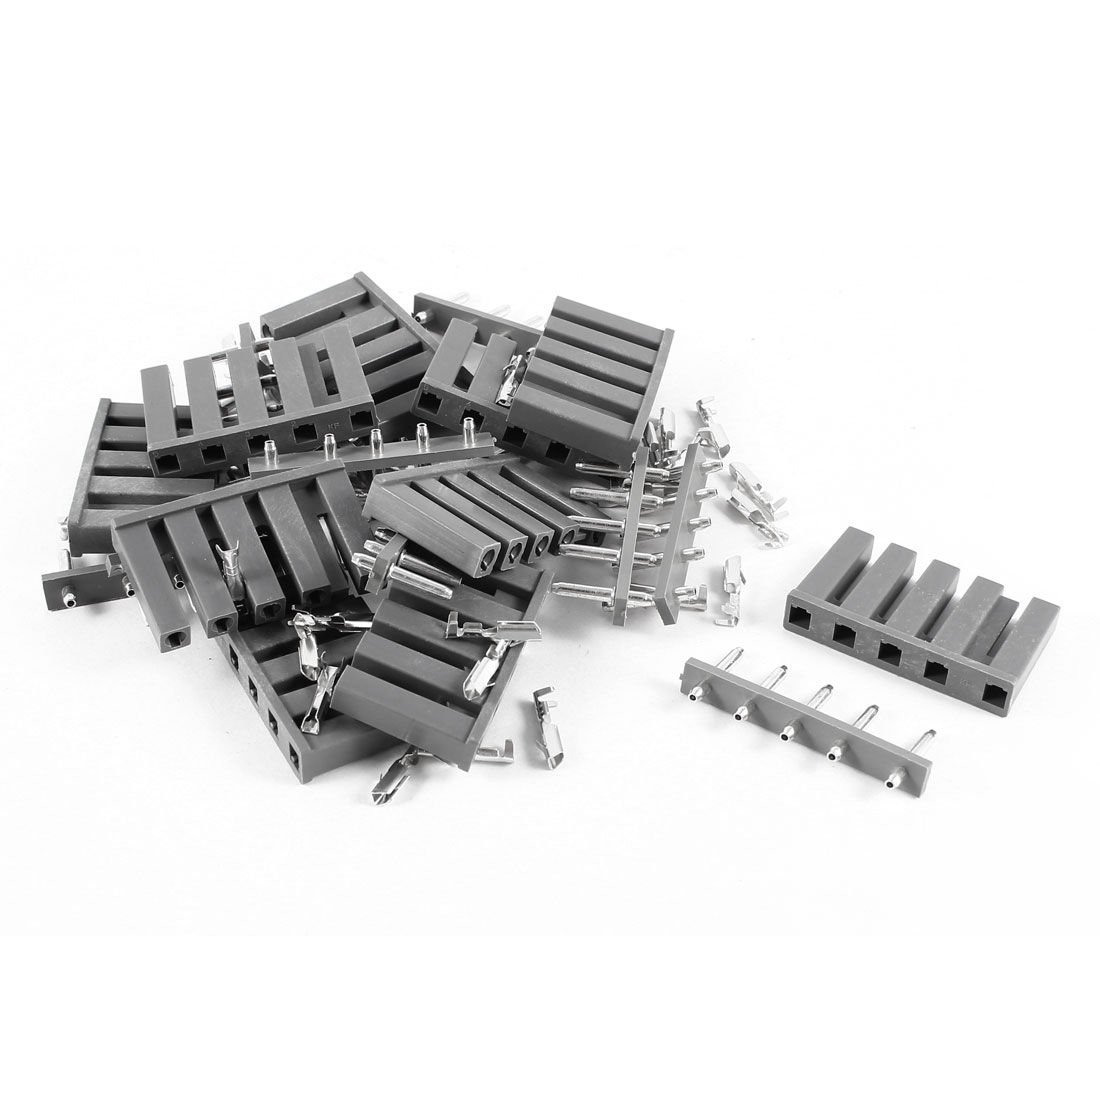 10 Pcs Gray TJC1-5P 5Pin Connector 10mm 8mm Pitch PCB Plastic Housing Socket